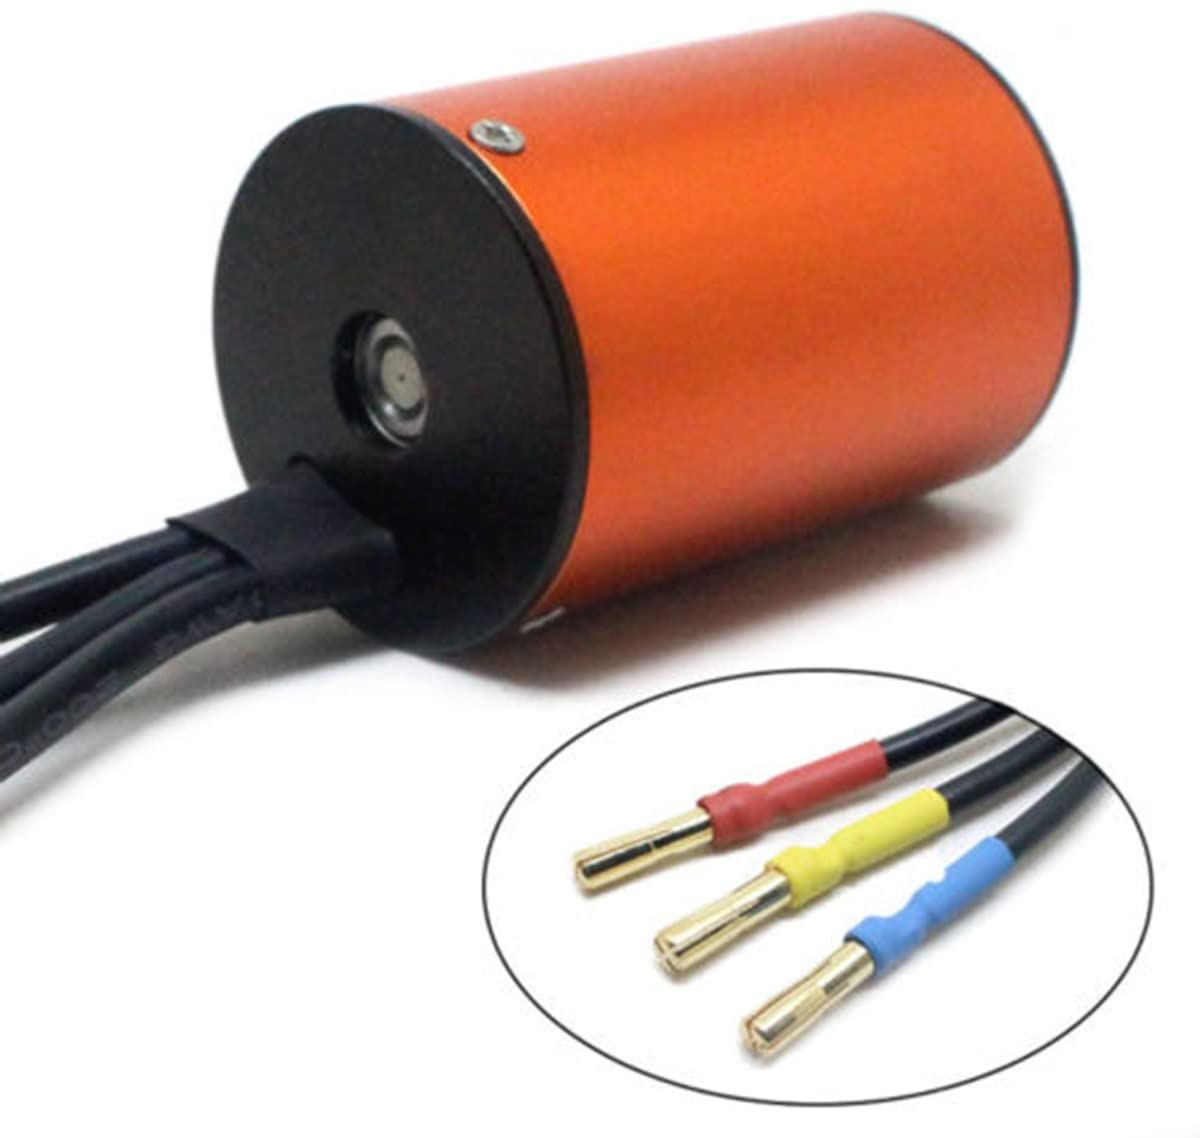 ukcoco Waterproof Brushless S3650/4300/KV Motor Brushless Sensorless Combined with 60/A ESC Speed Controller for 1//10/RC Car